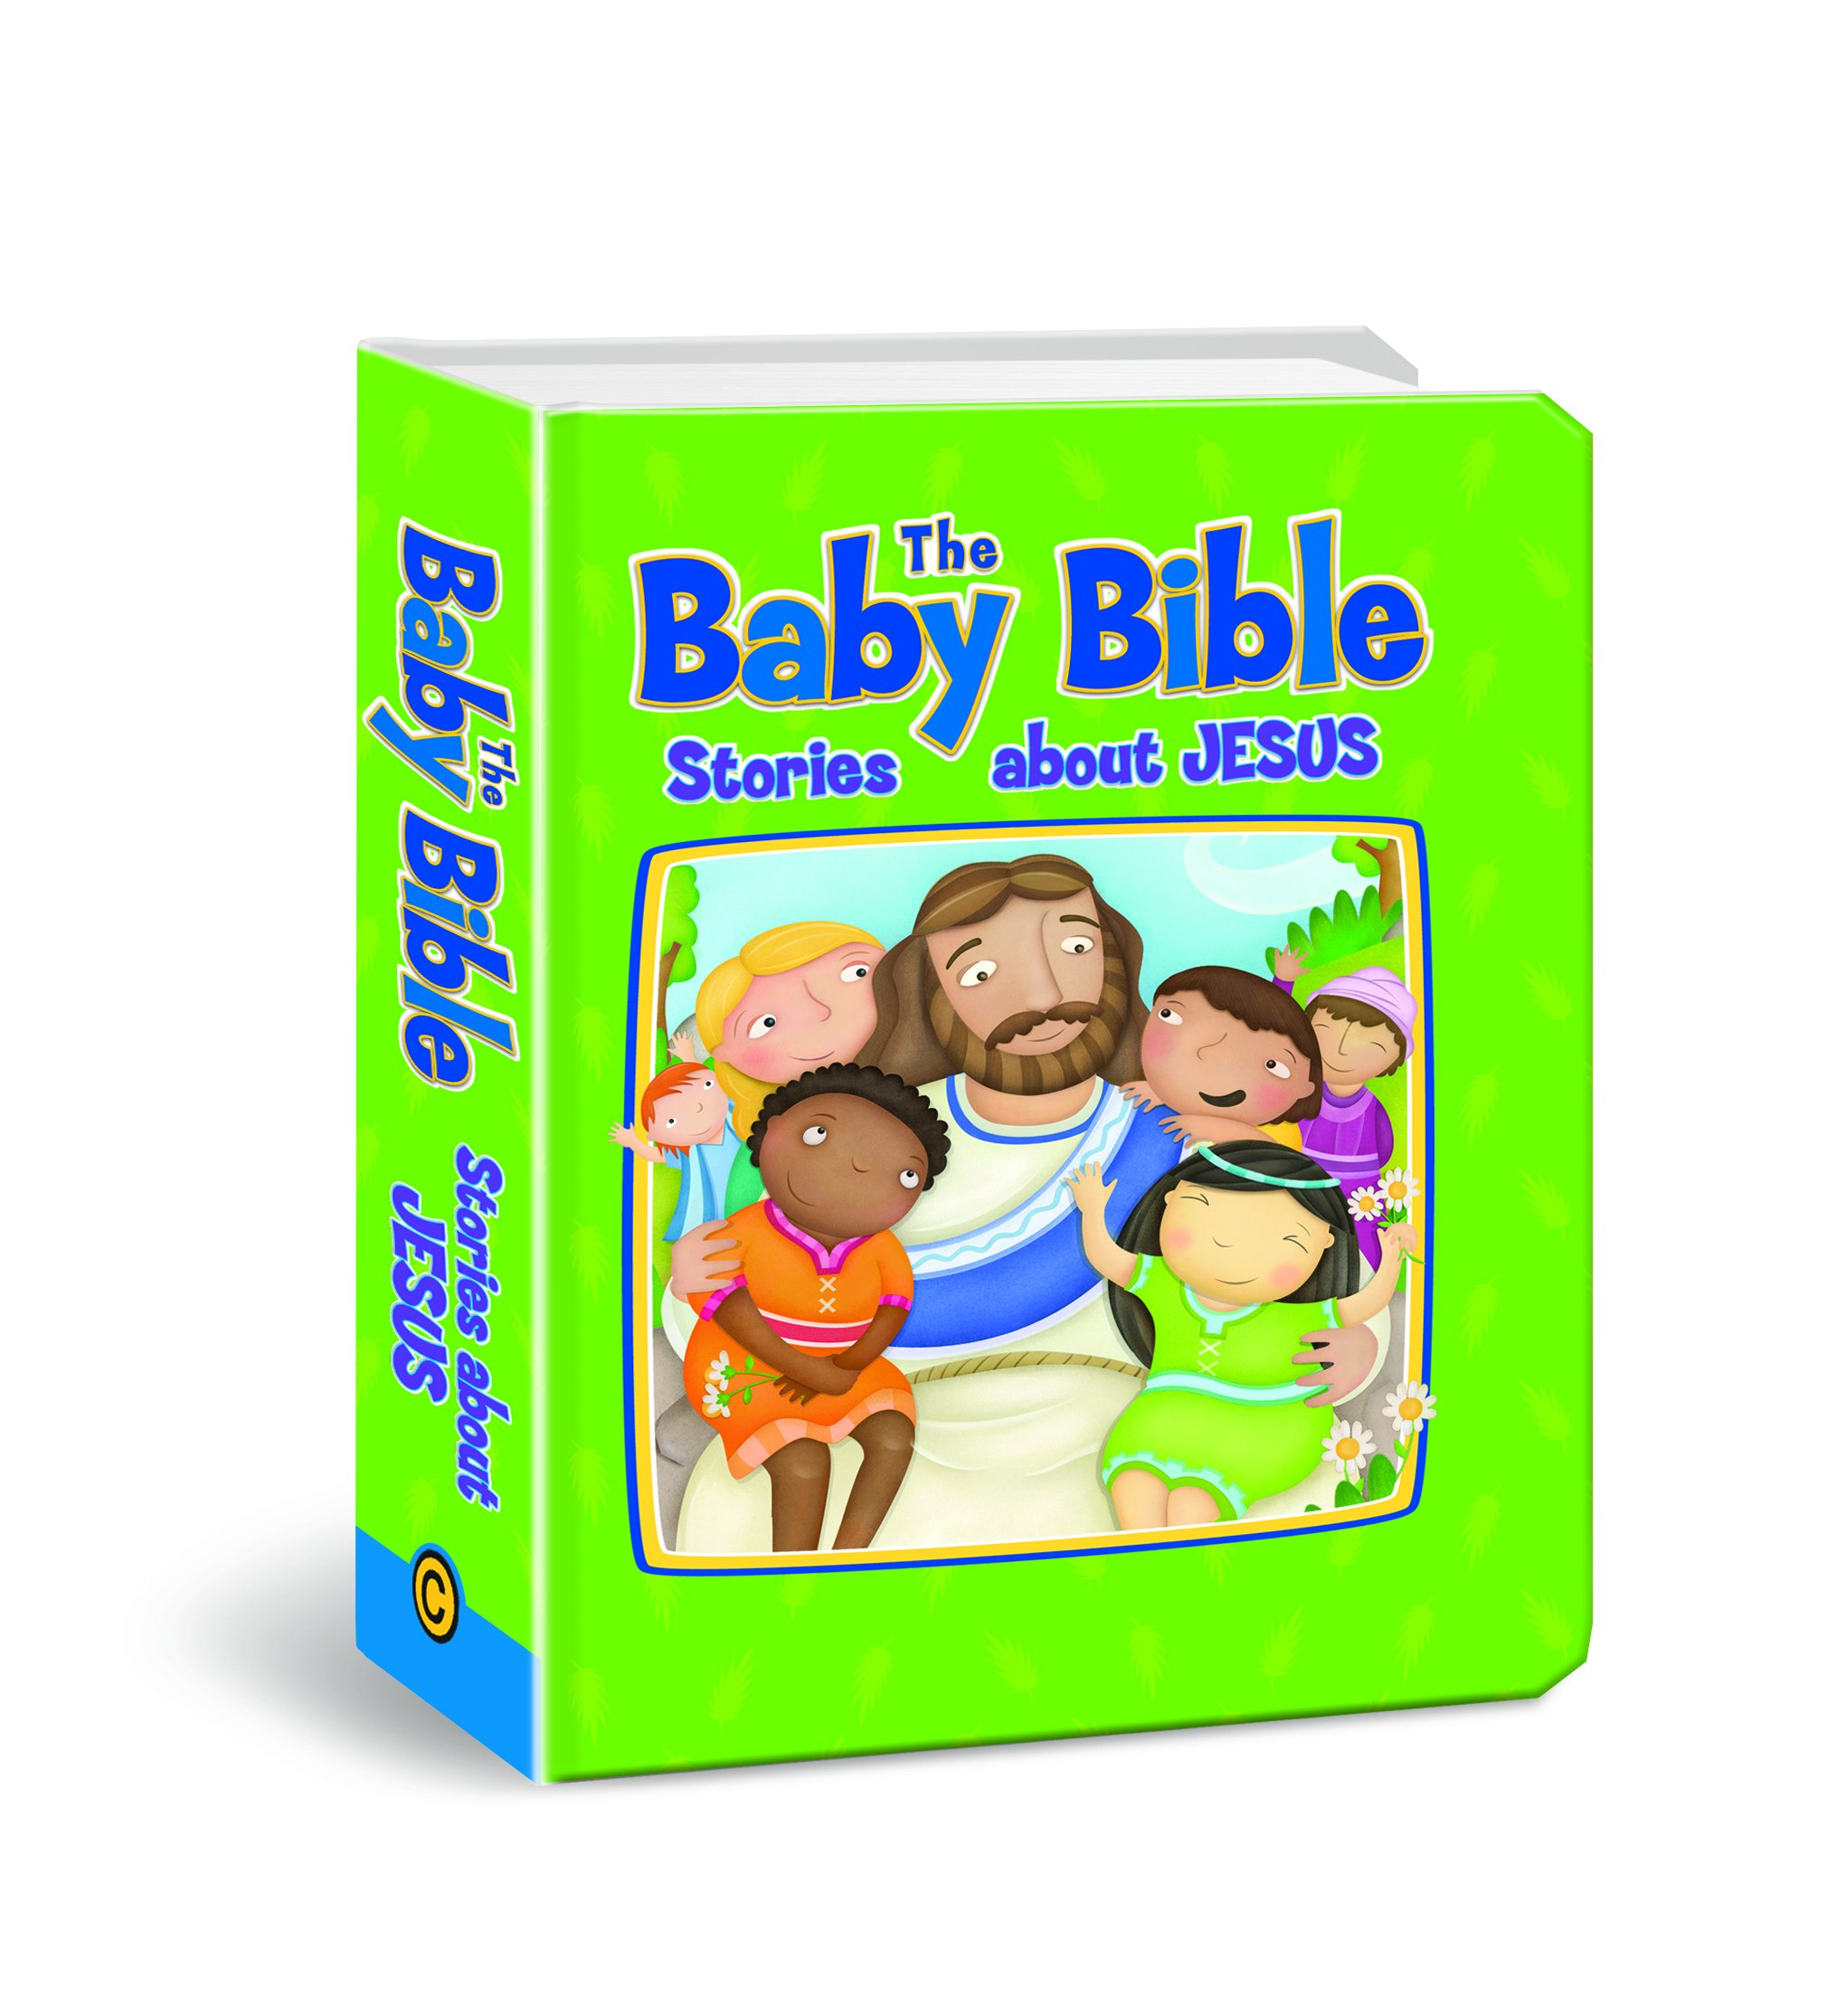 The Baby Bible Stories about Jesus (The Baby Bible Series)